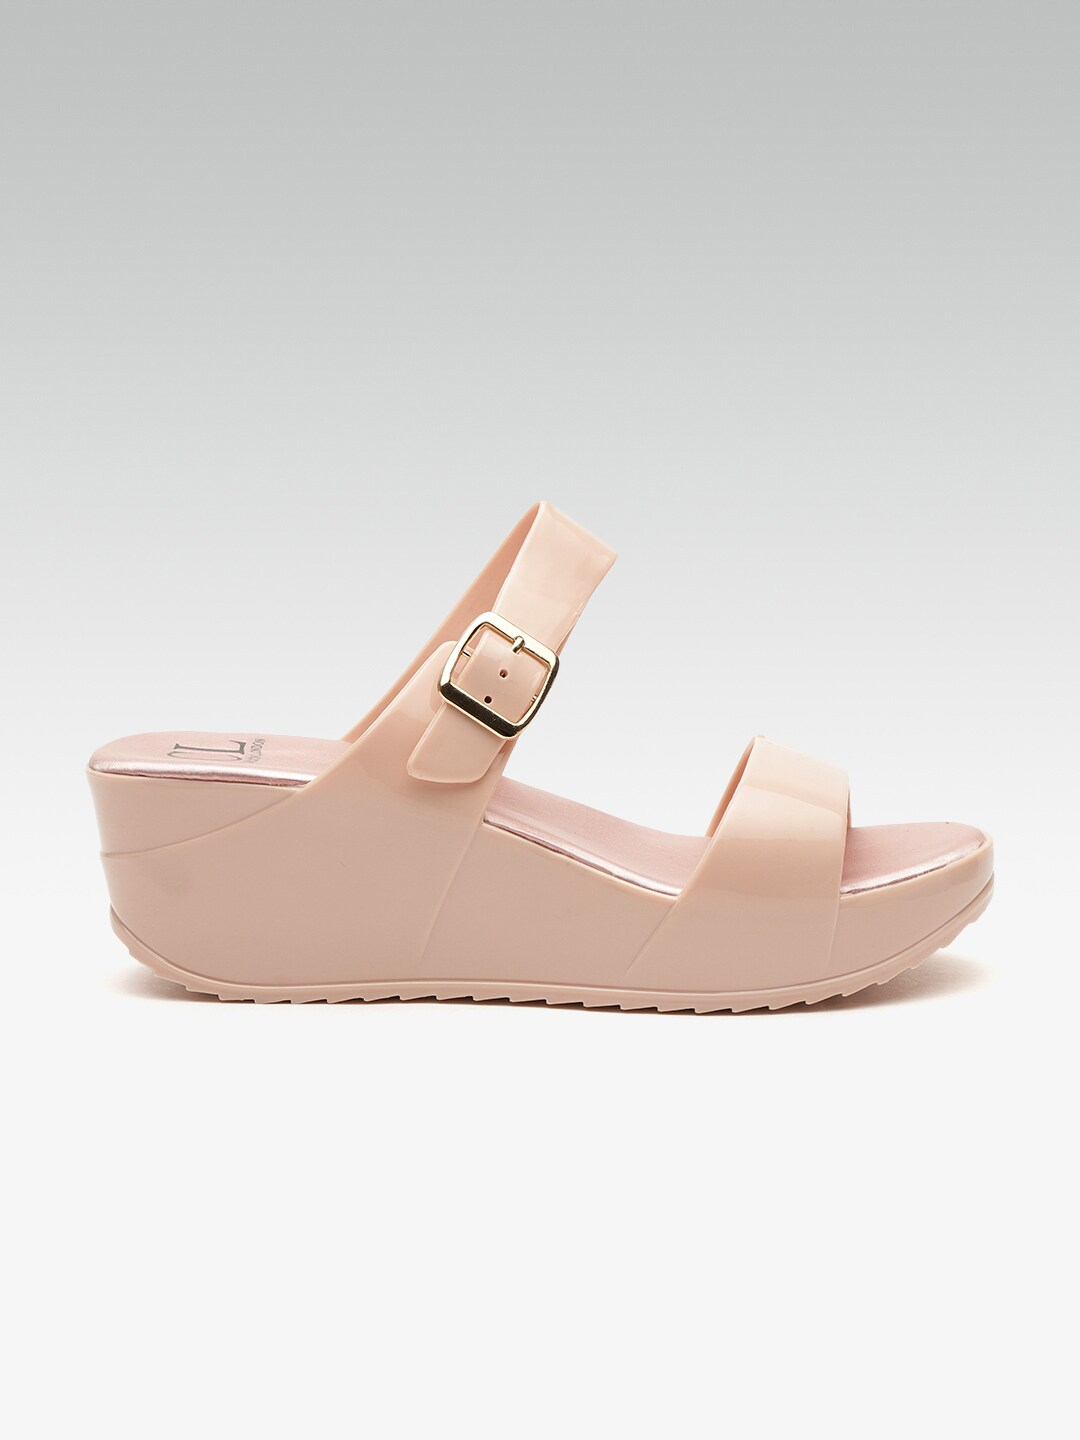 0e51a2ed26d8 Pink Shoes - Buy Pink Shoes Online in India